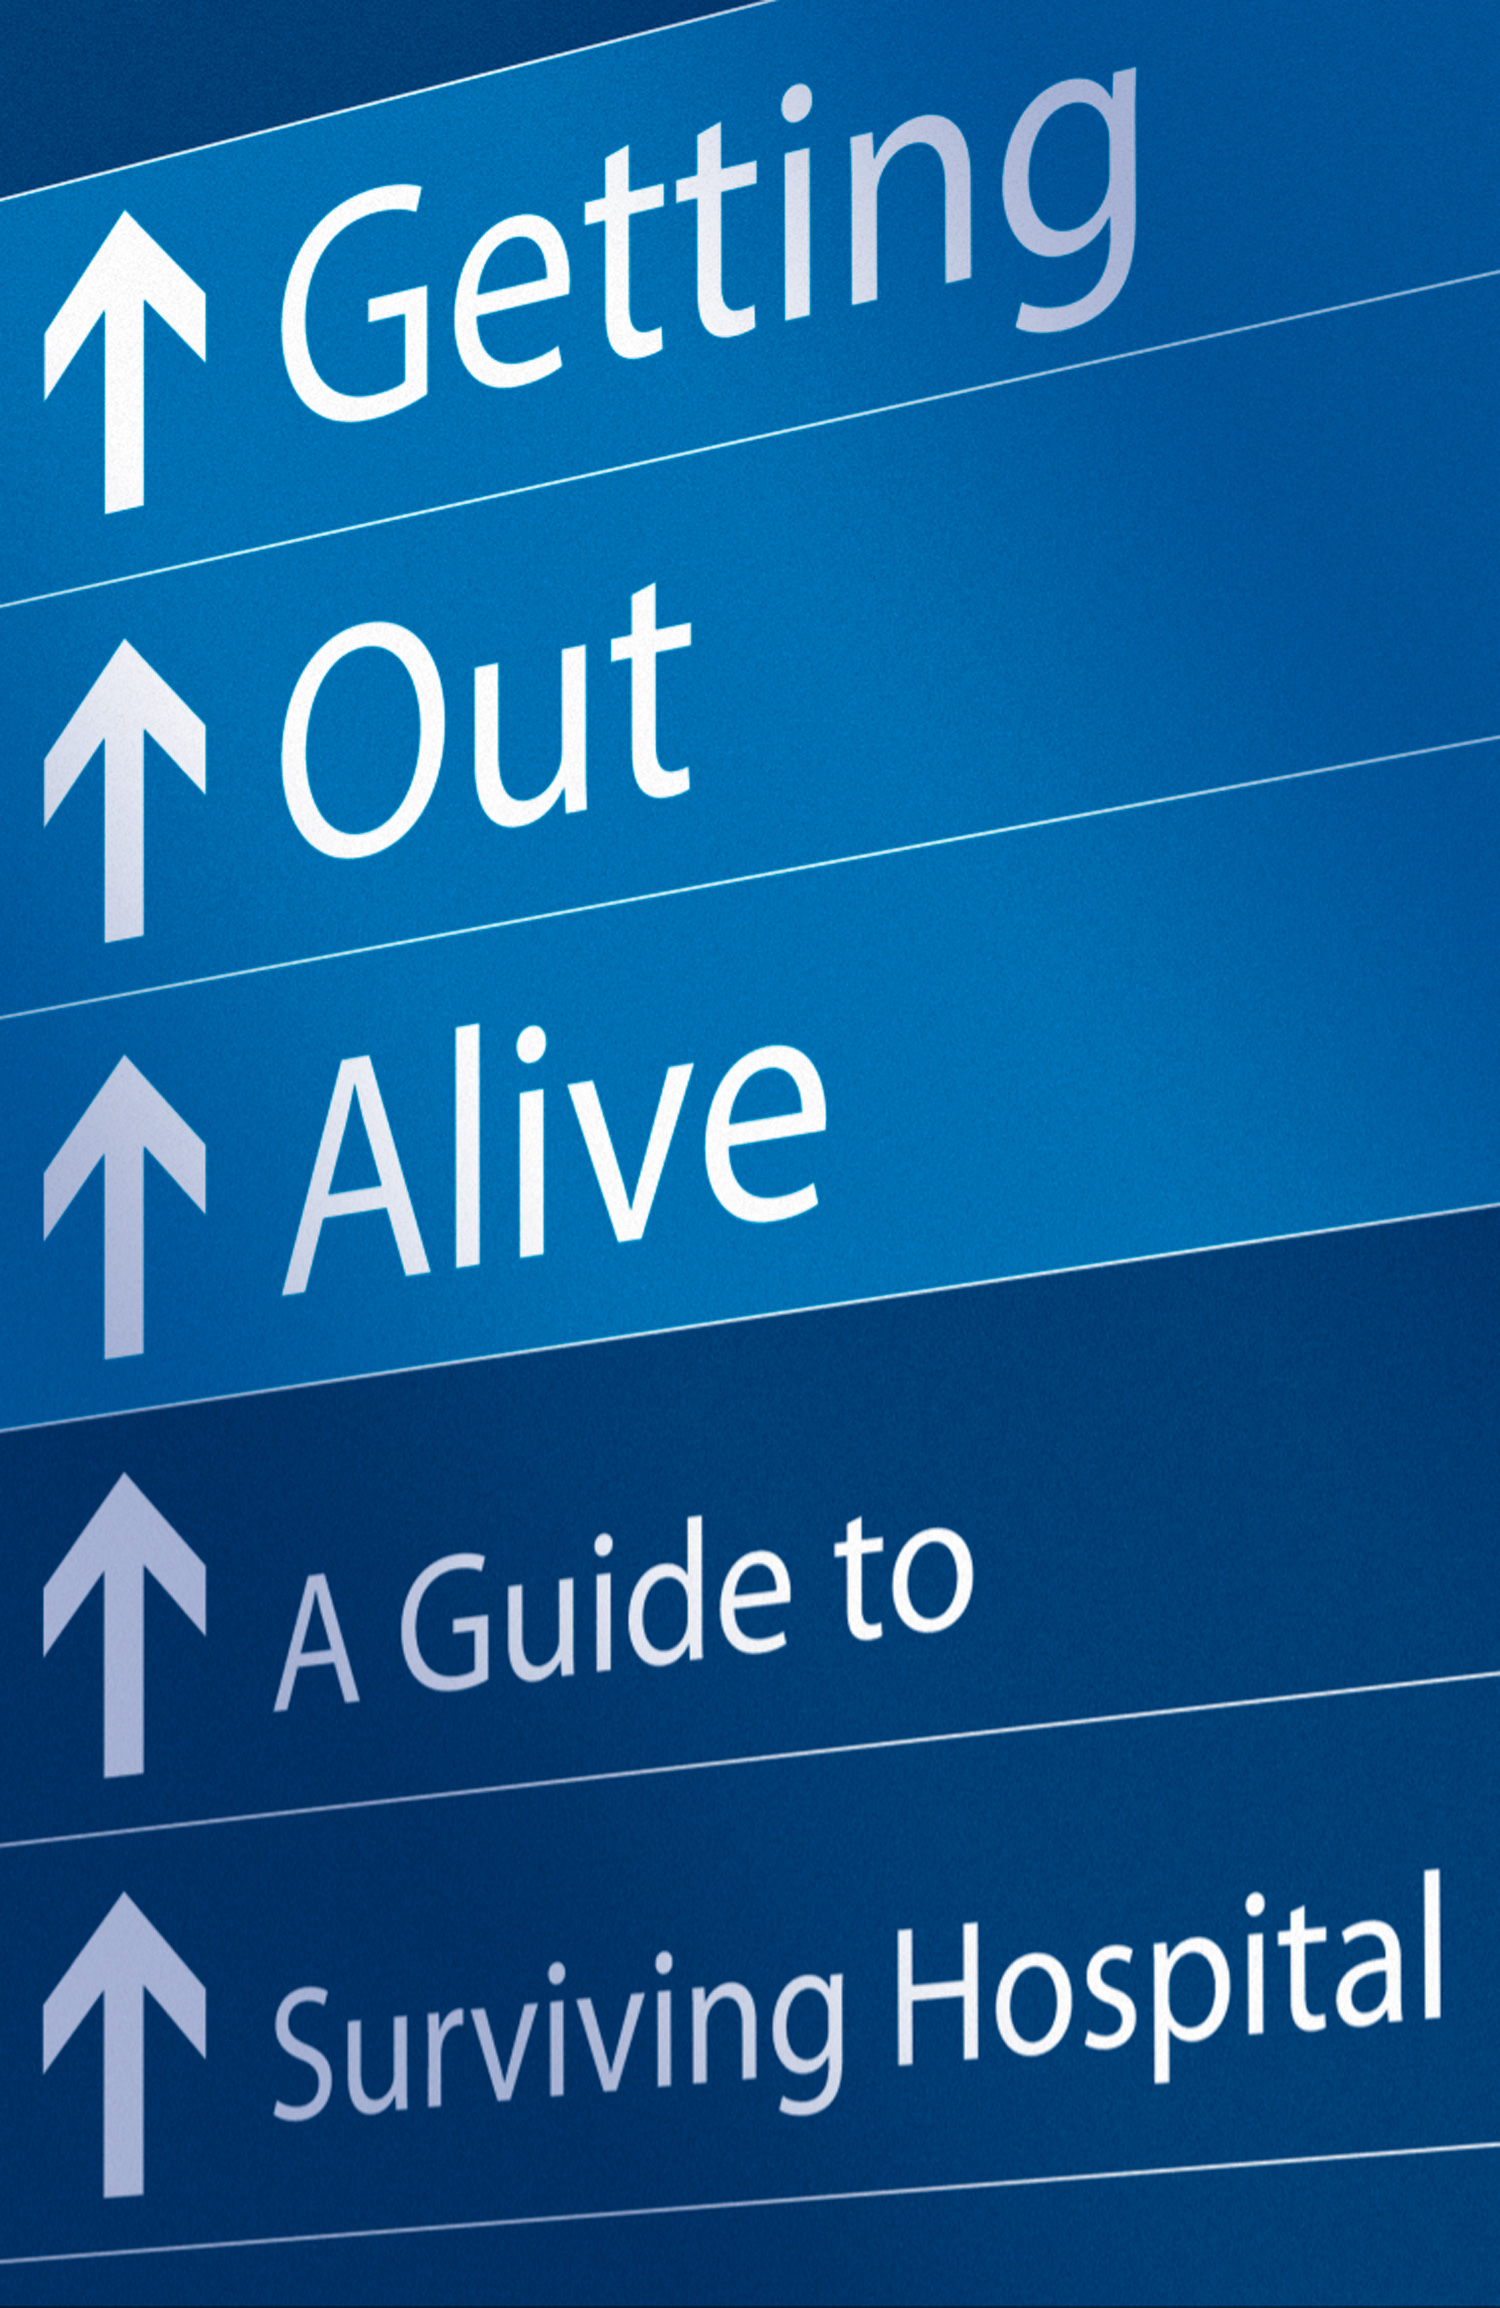 Getting Out Alive: A Guide to Surviving Hospital